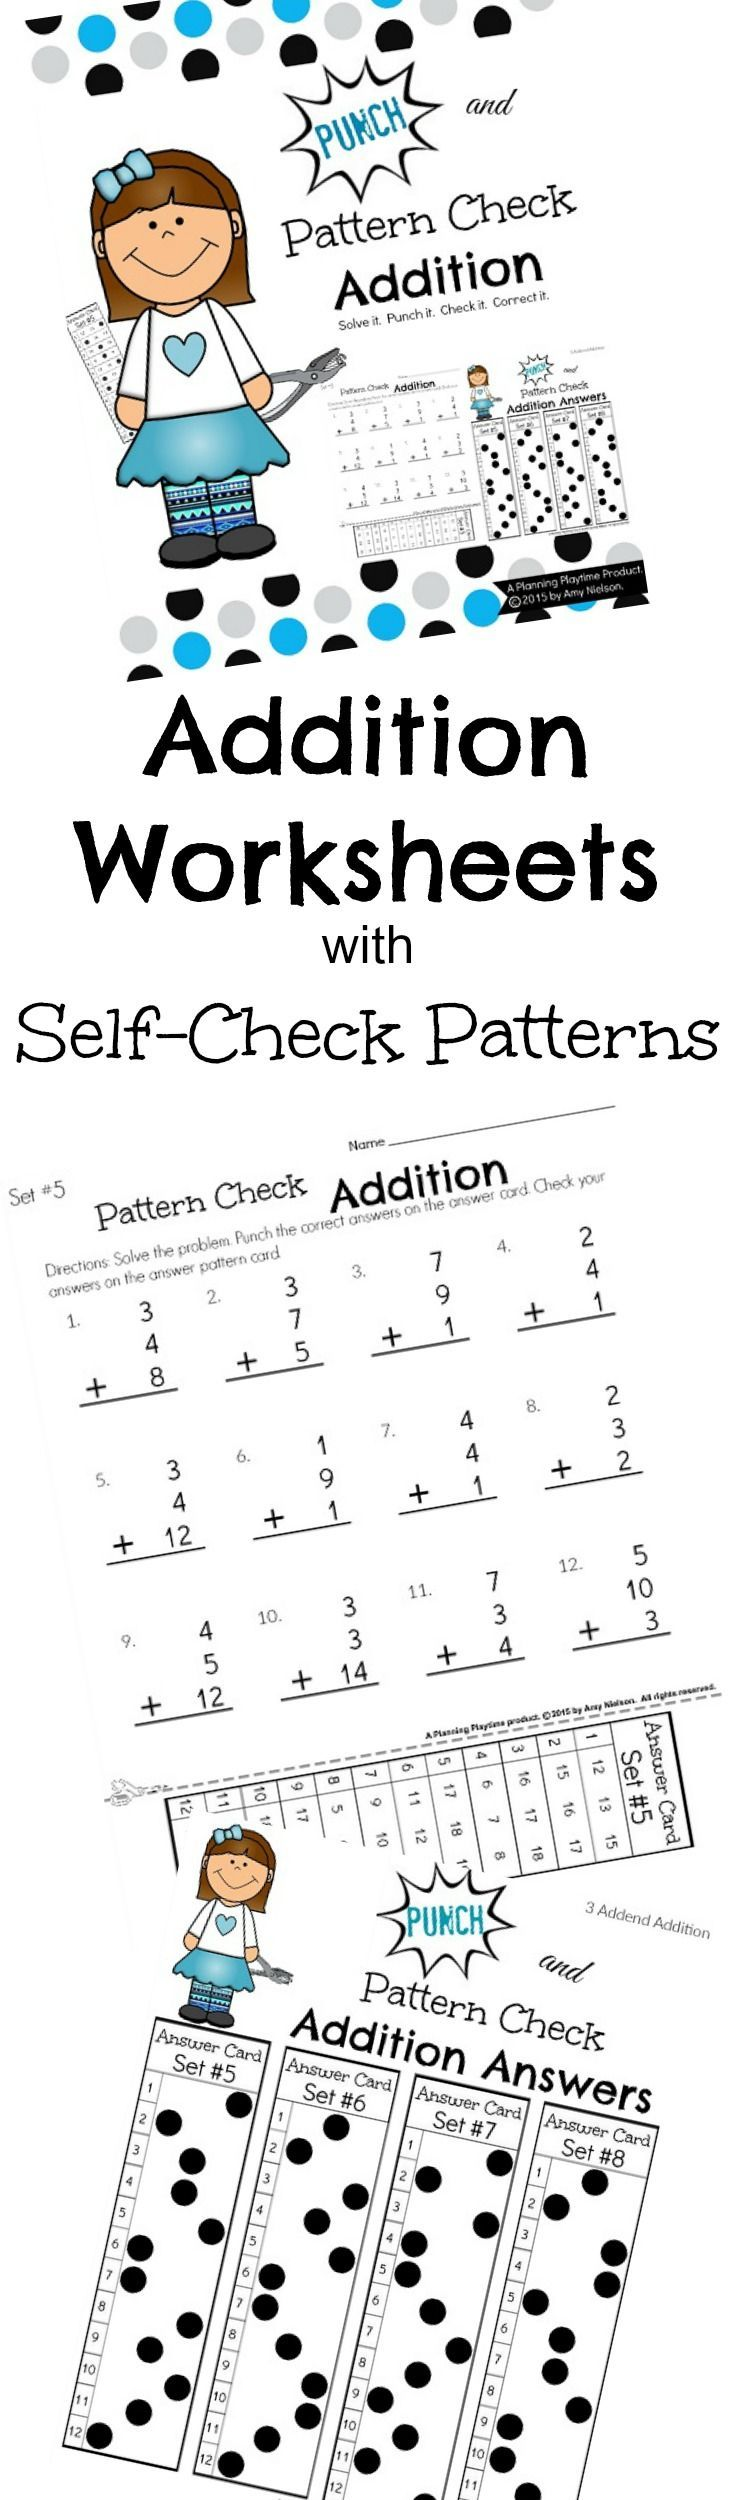 Super fun addition worksheets with self check. Solve the problems, punch out the answers, and then check them against the answer pattern card. If you seen back through the holes you got it right. If you see white, try again.  #1st #grade #math #addition #worksheets